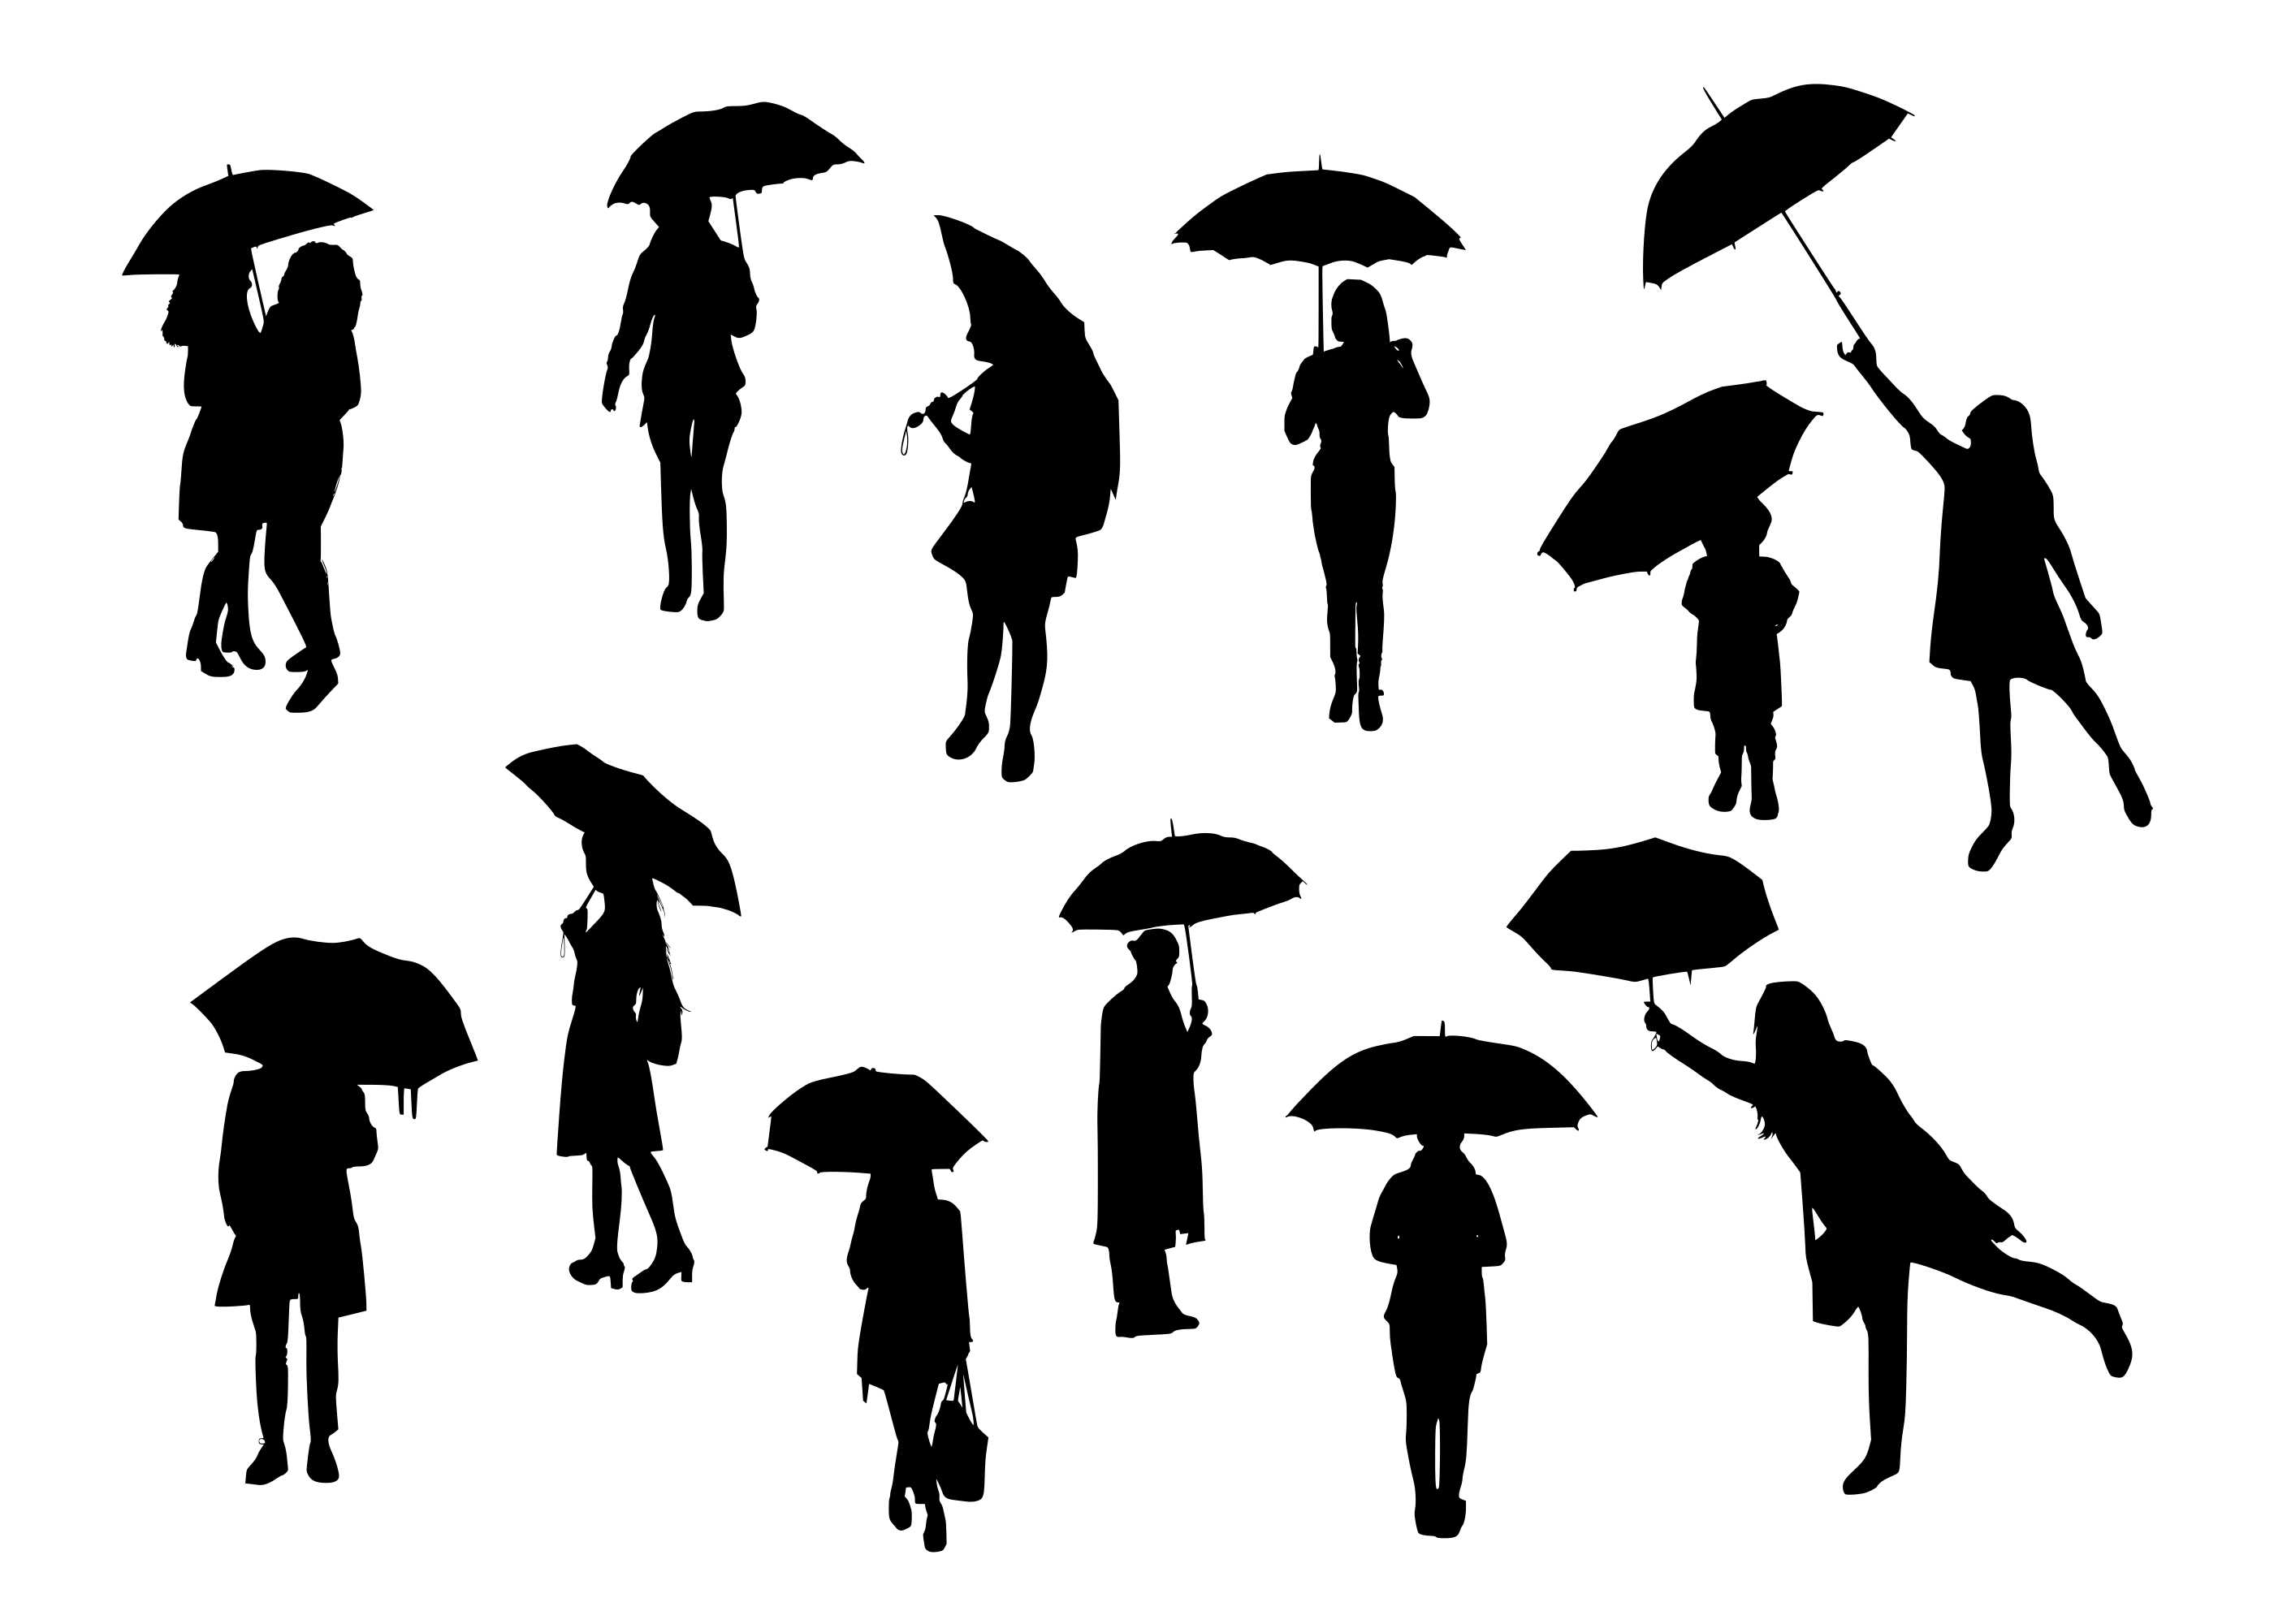 12-people-with-umbrella-silhouette-cover.jpg